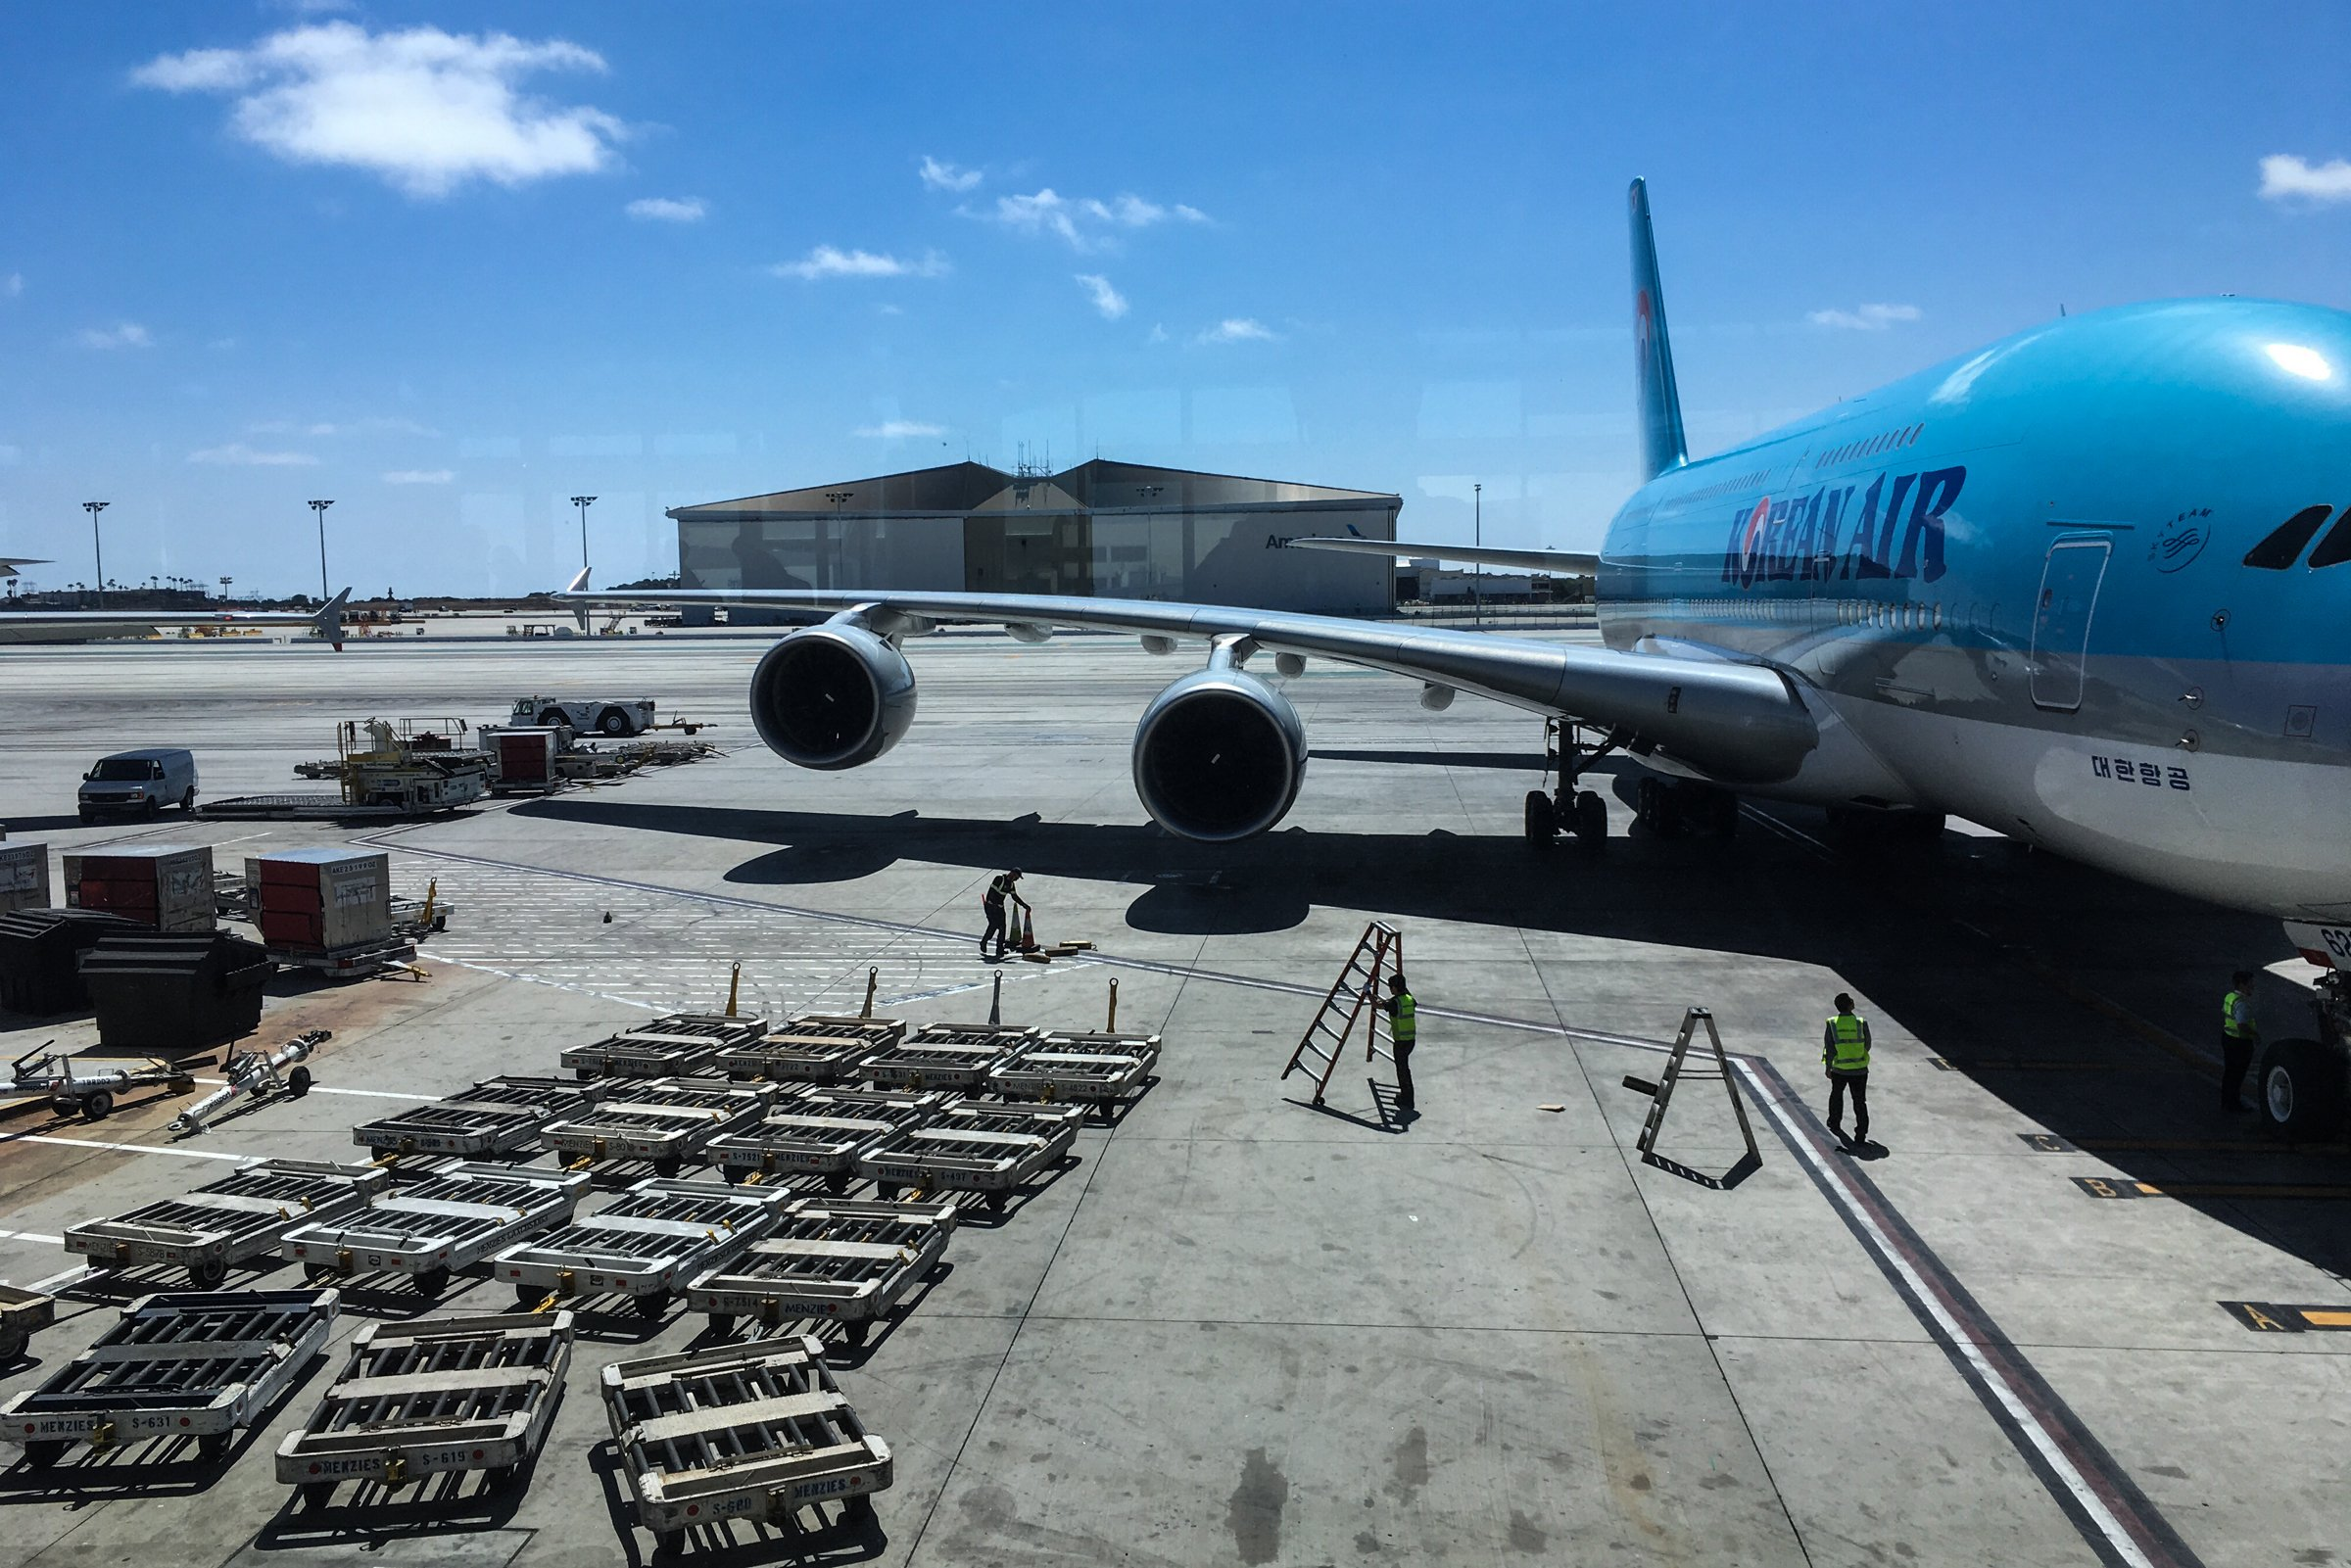 Airplane Refueling at Airport Gate